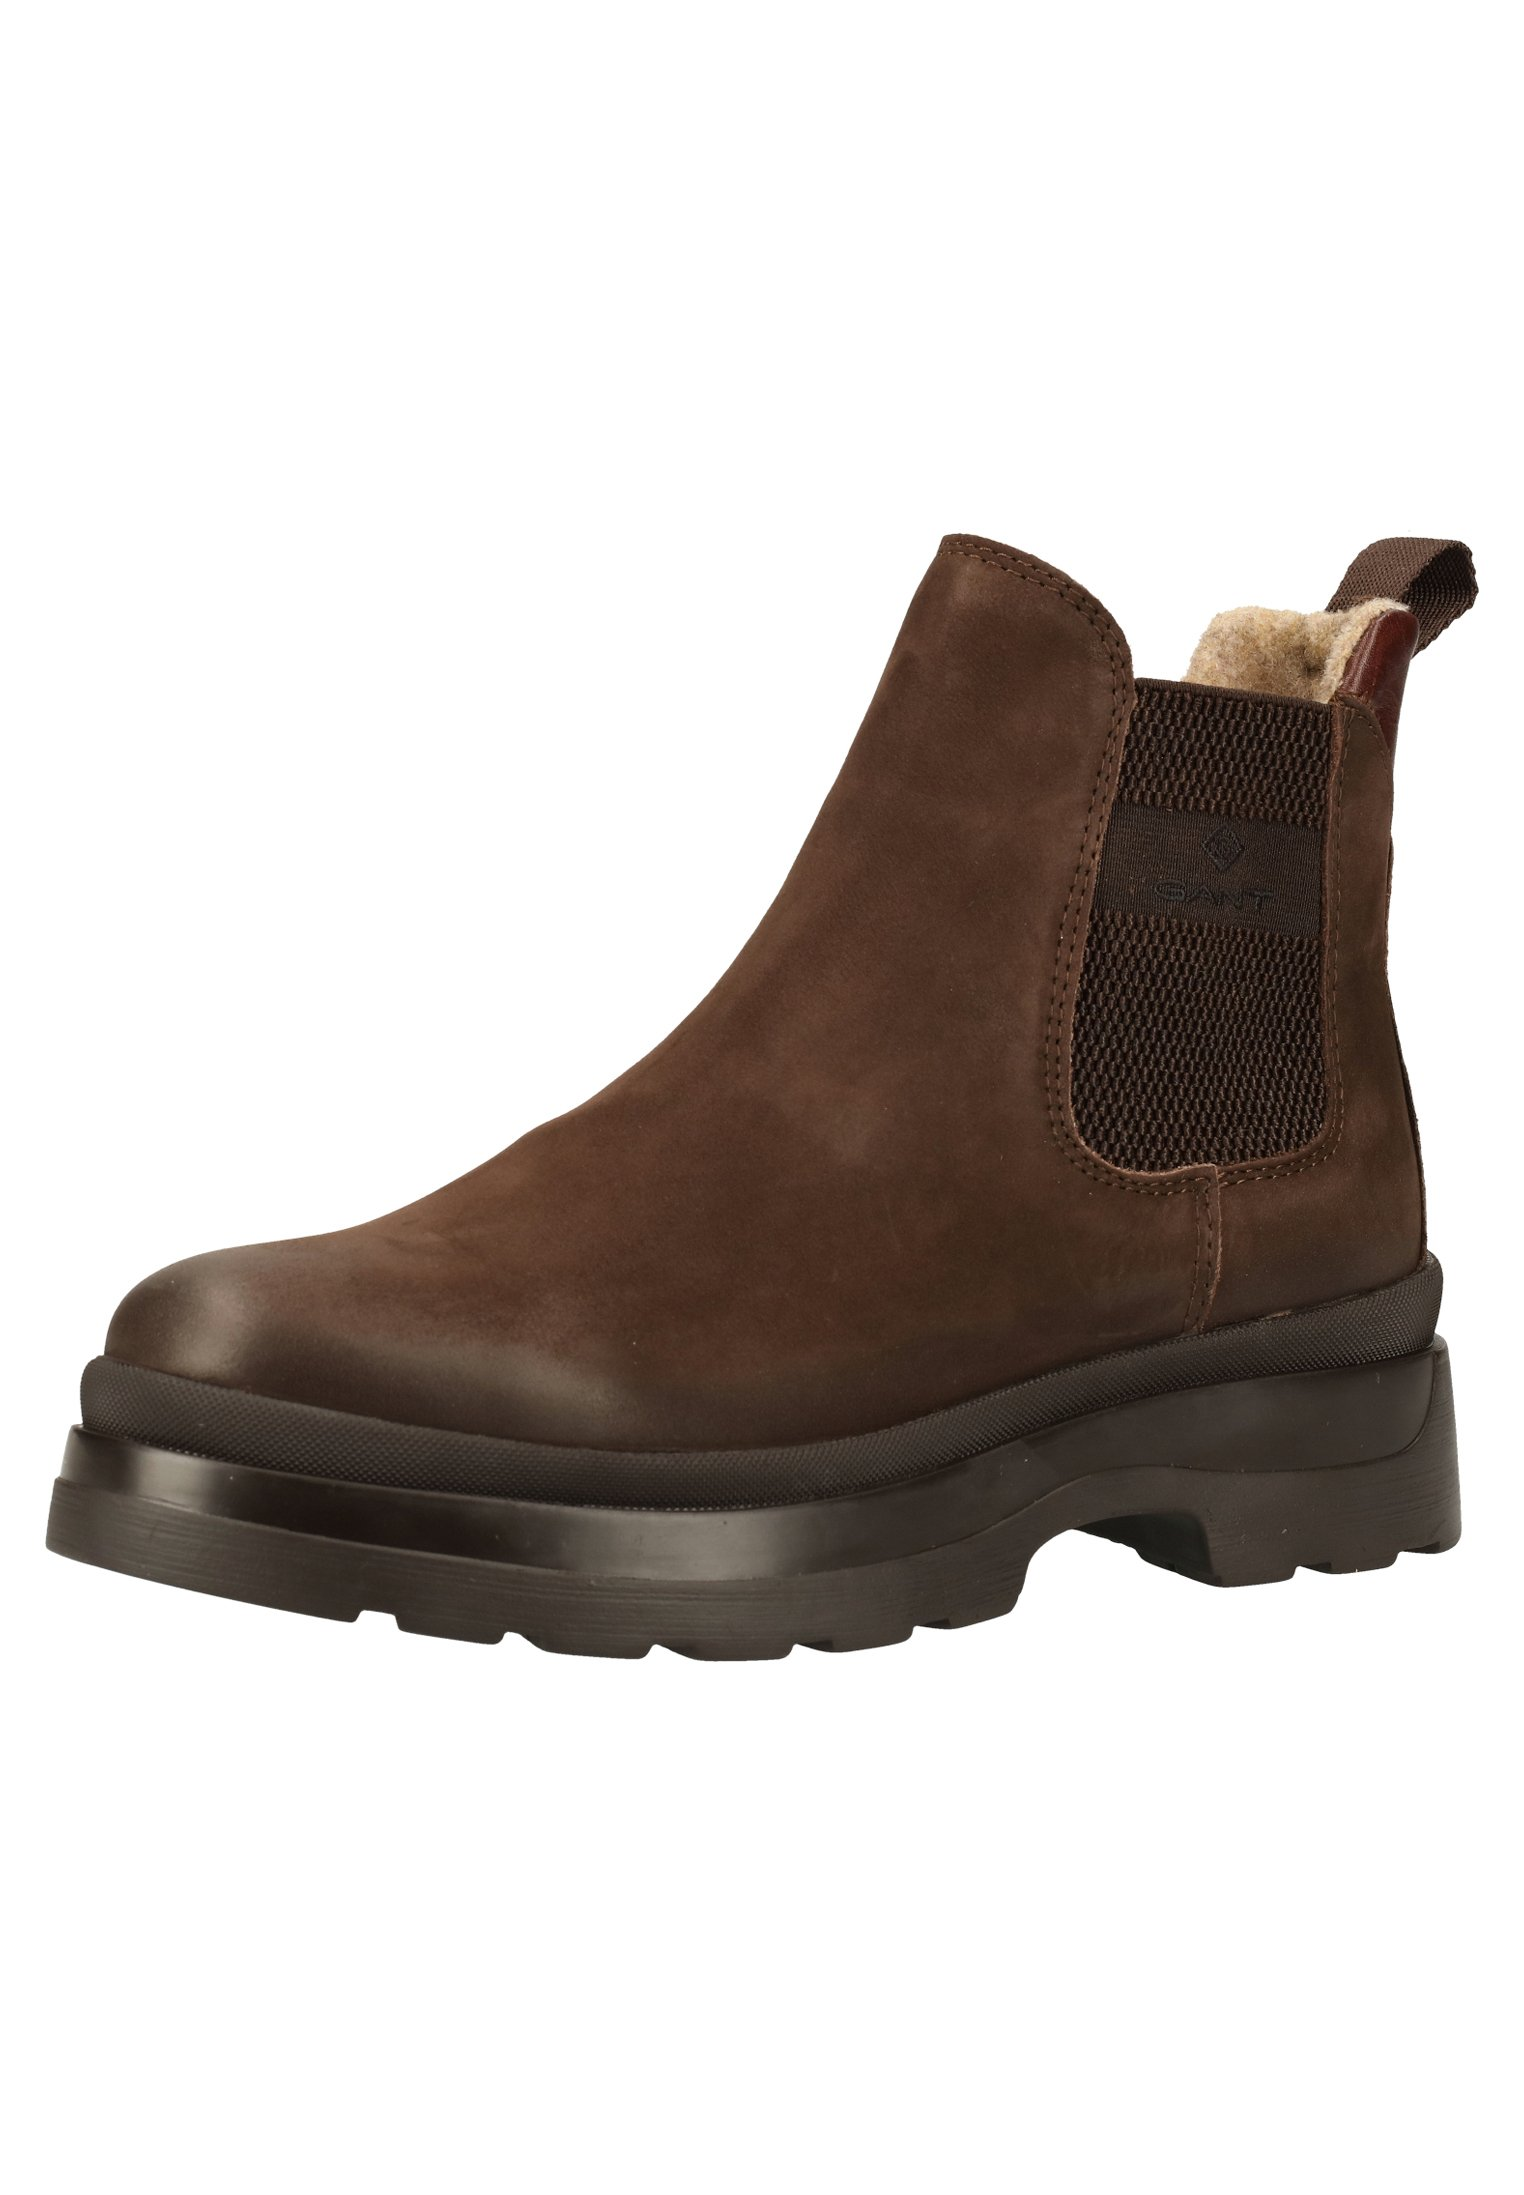 Gant Ankle Boot - Dark Brown G/dunkelbraun